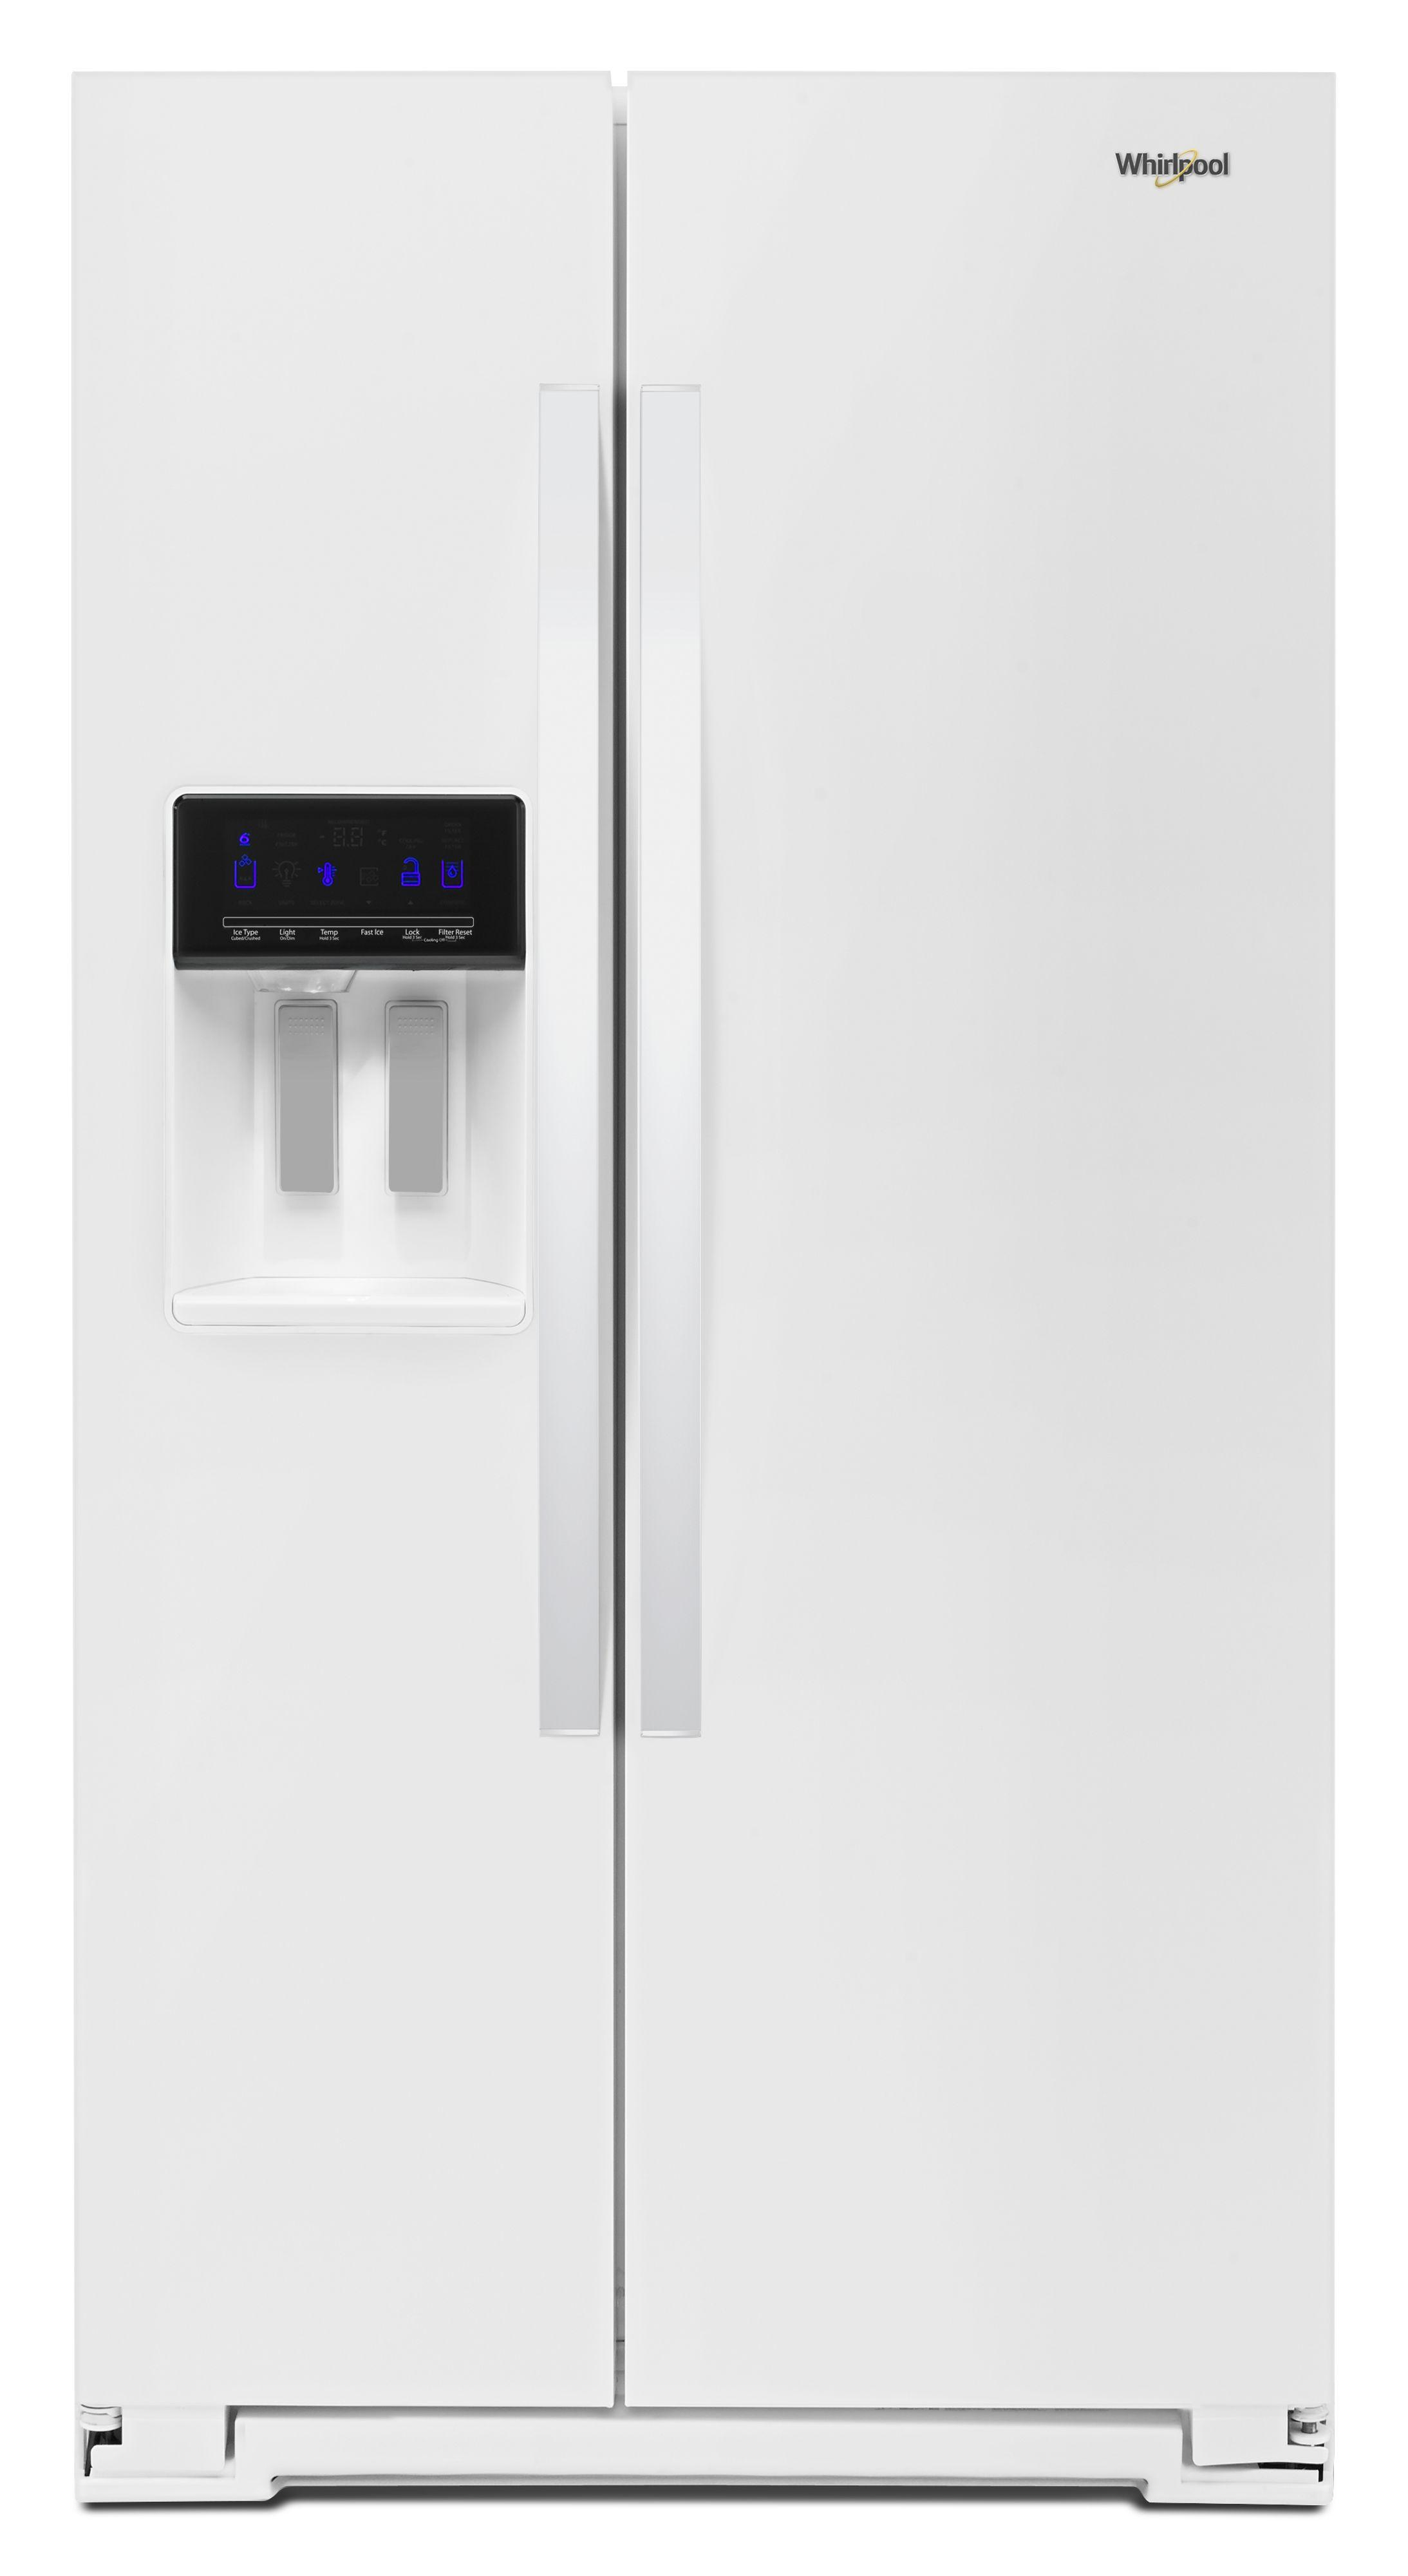 Wrs571cih Whirlpool Wrs571cih Side By Side Refrigerators